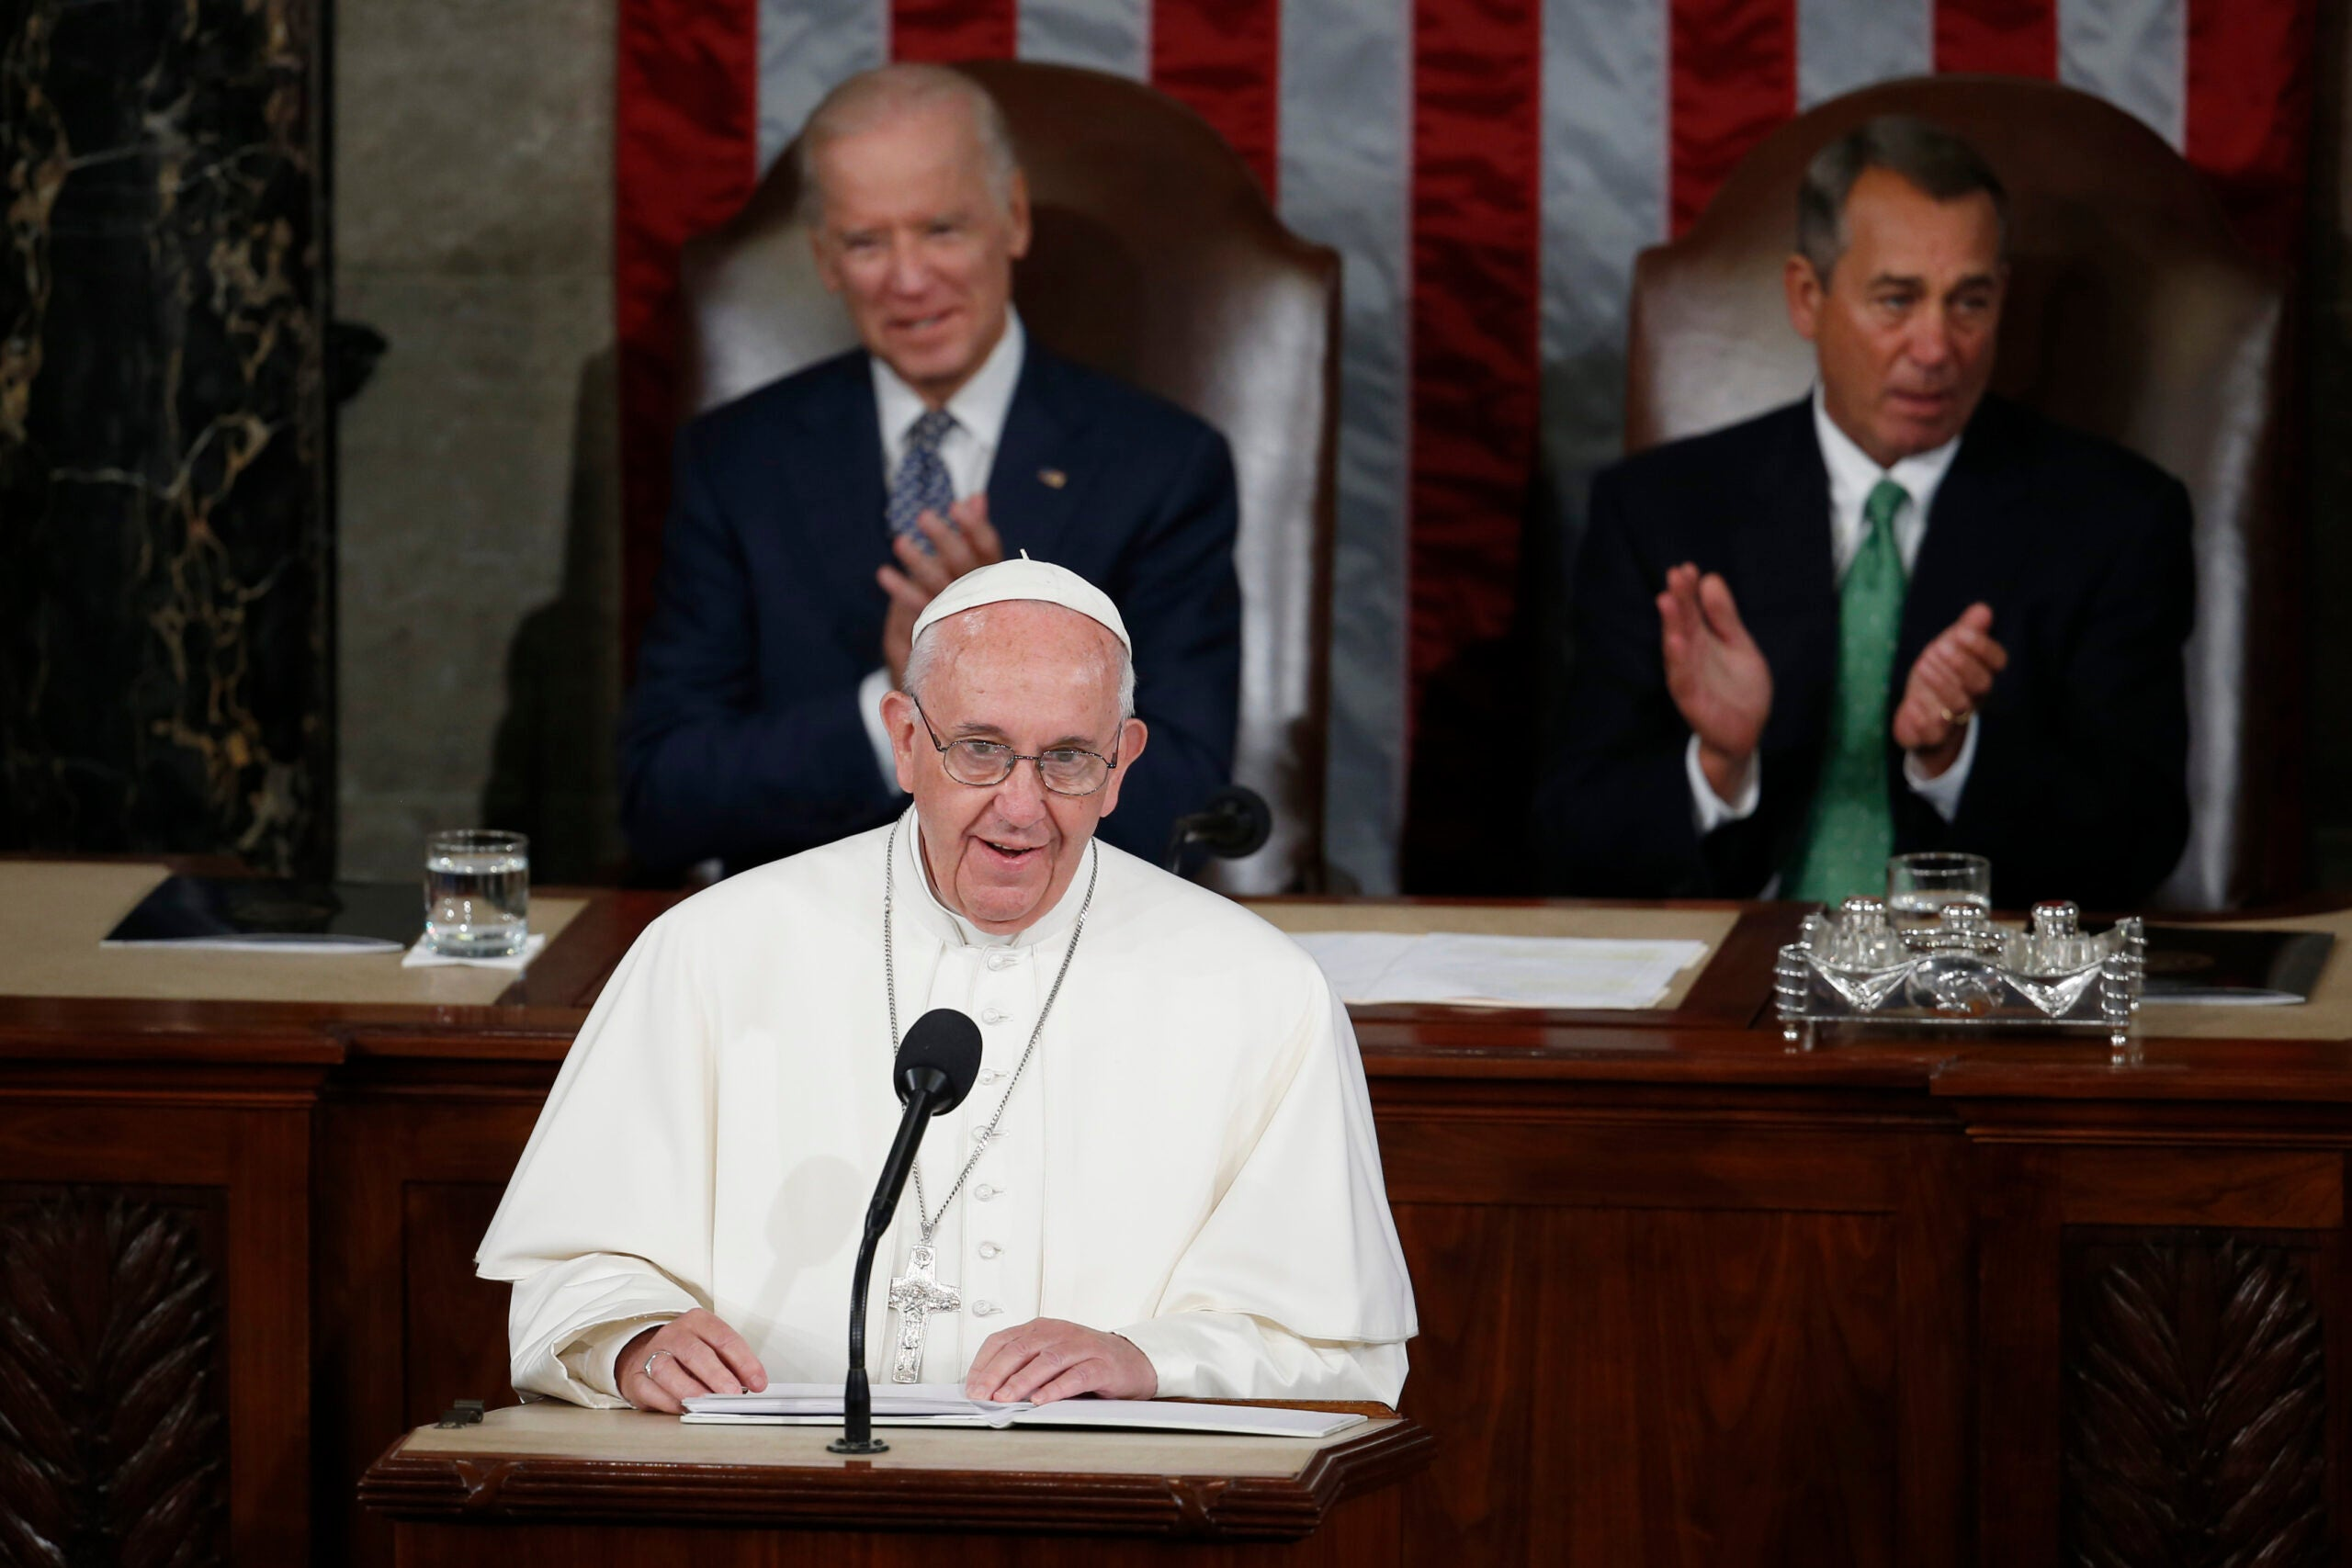 Pope Francis Says Tech Can Help Solve Climate Change In Address To Congress